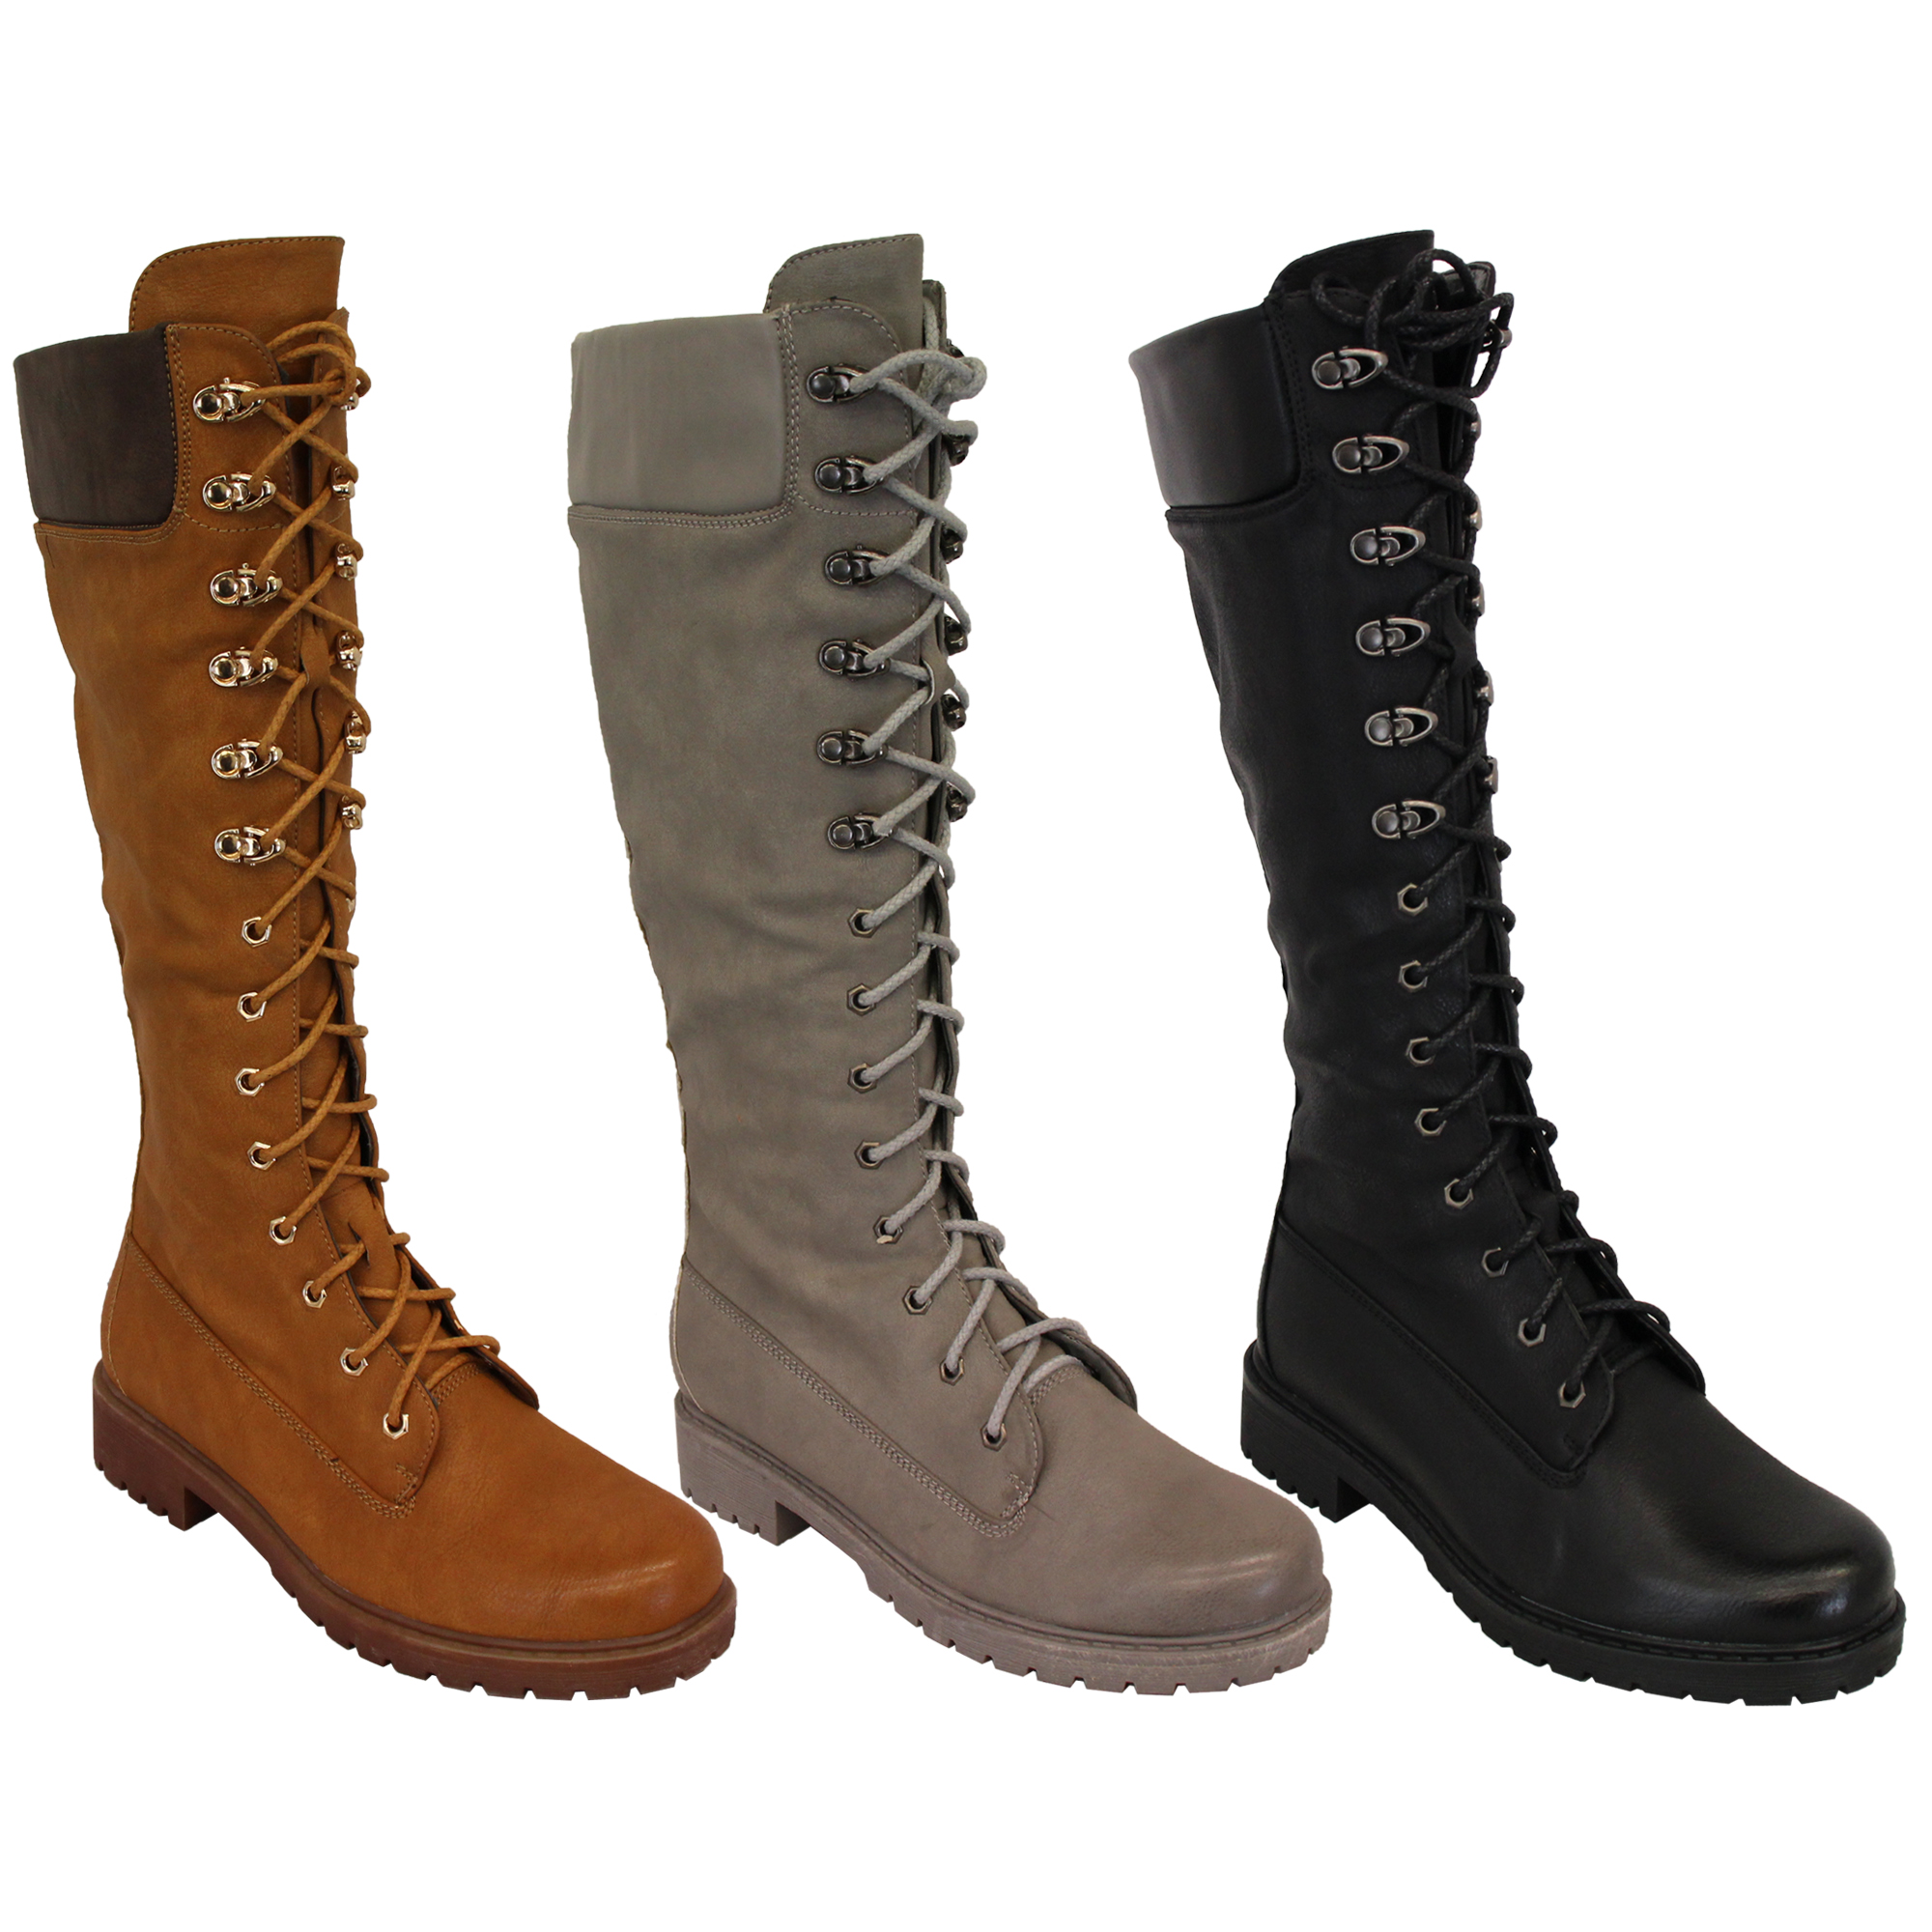 11b70bb78b0 Details about Ladies Knee Calf Length Boots Womens Lace Up Side Zipped  Military Shoes Winter